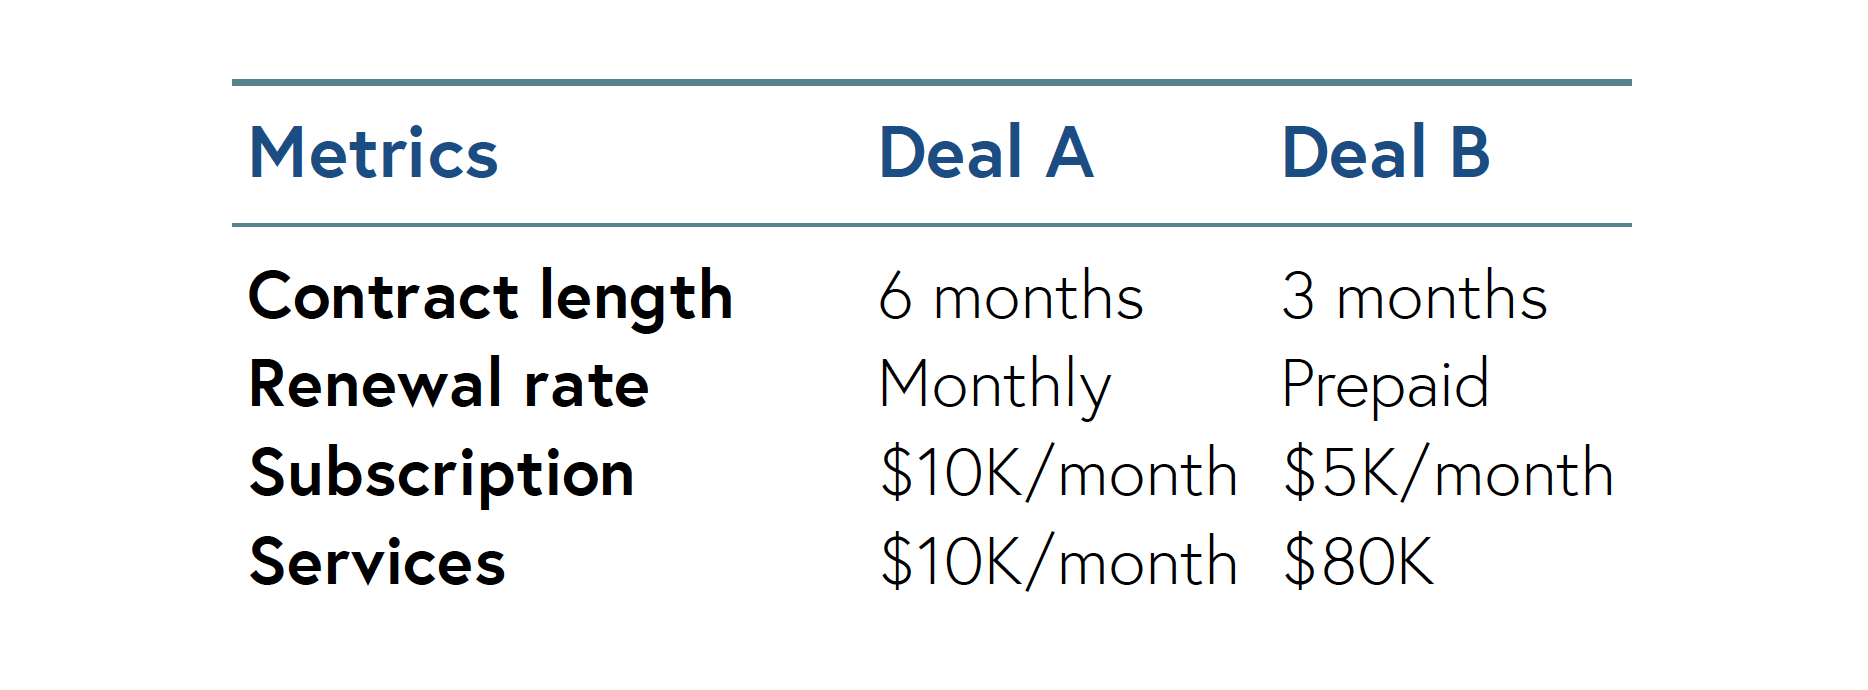 Here's an exercise: Below are two deals, which one should you pick?